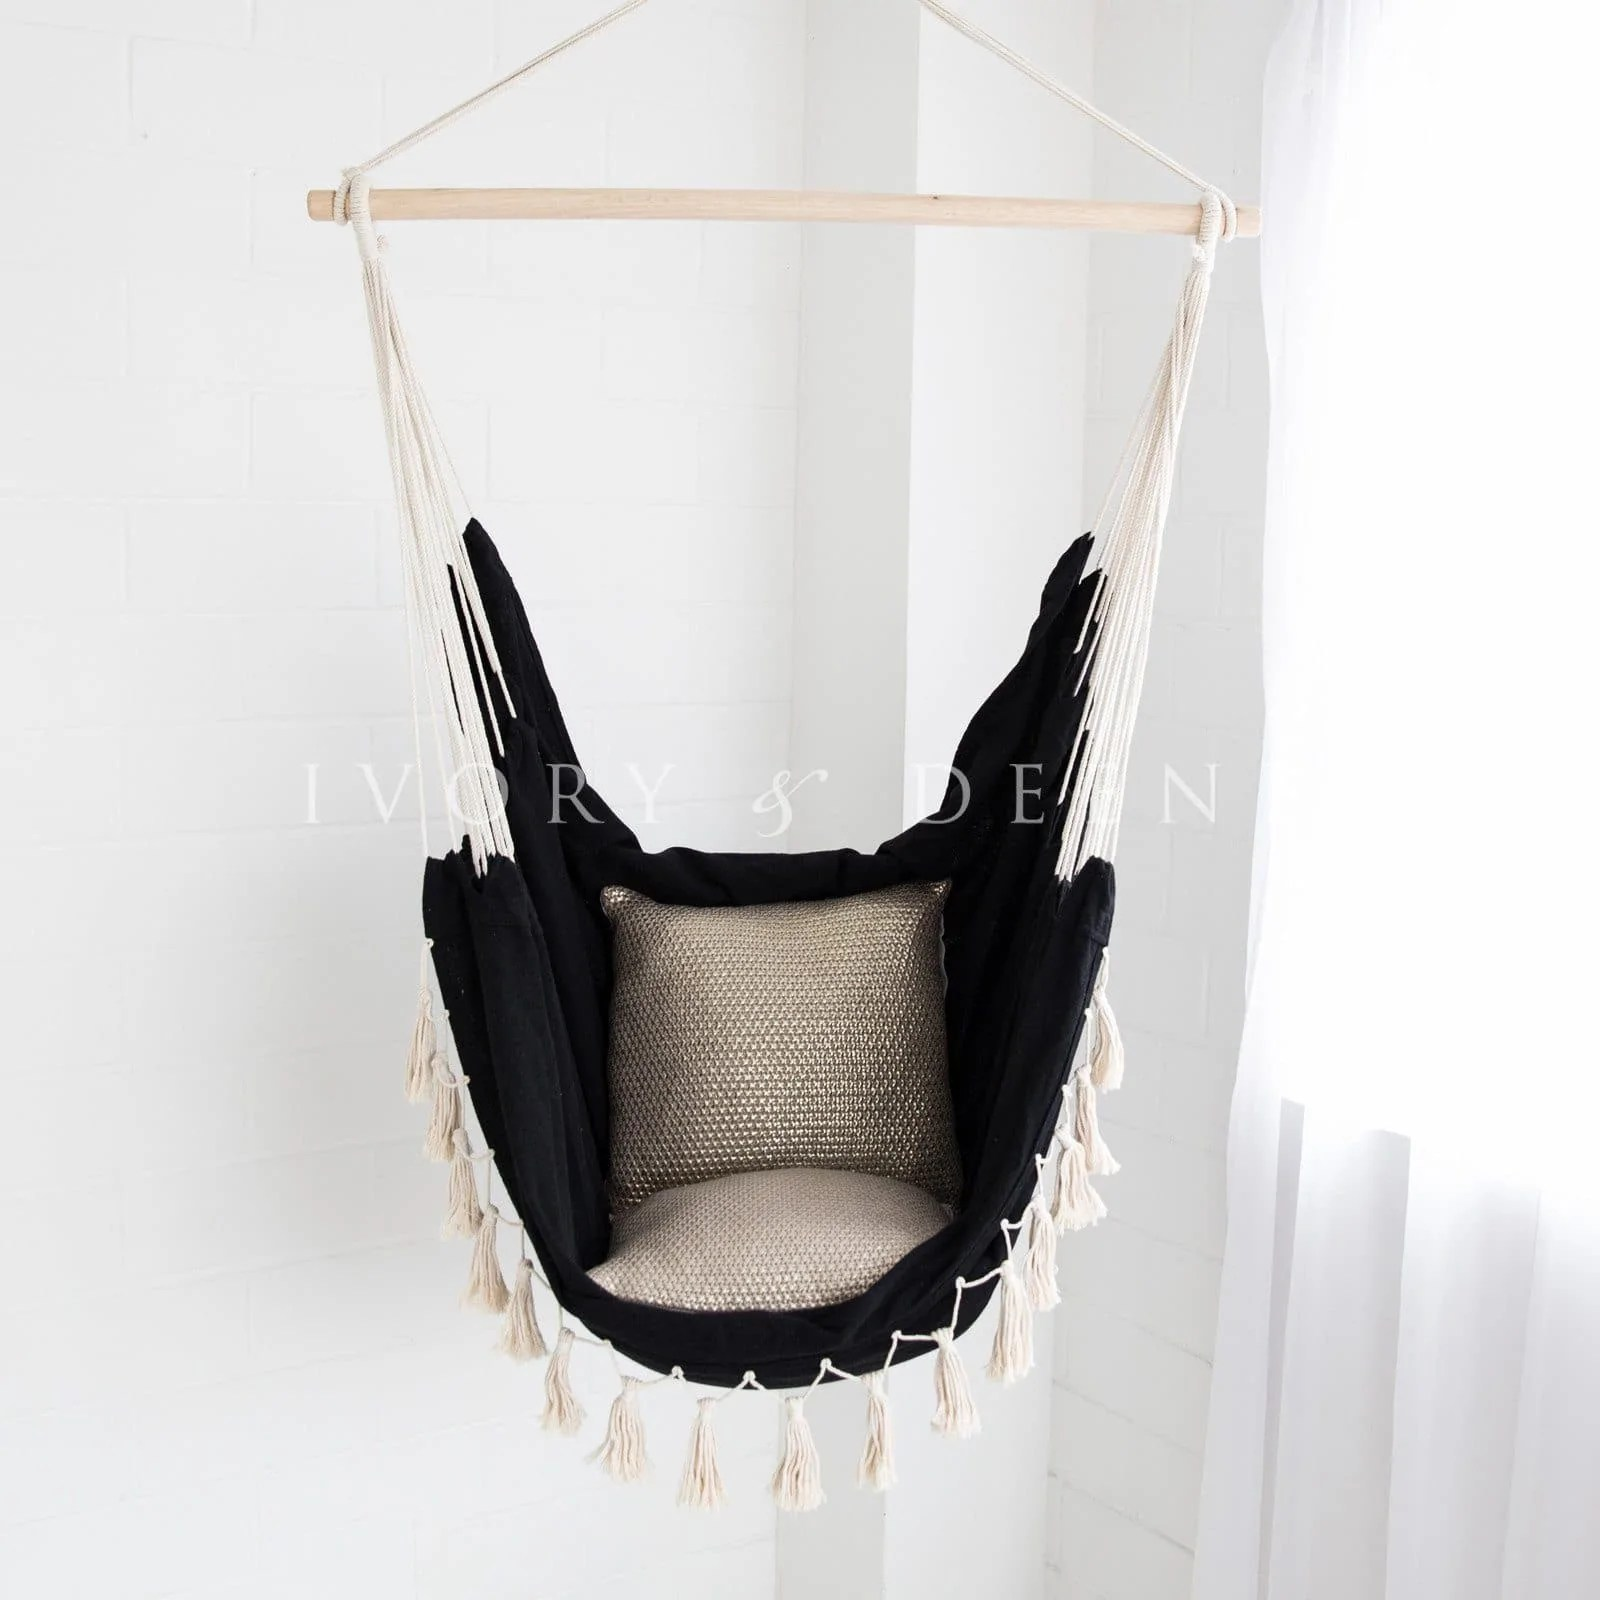 hanging chair ebay soft chairs for toddlers canada deluxe hammock relax in luxury provincial